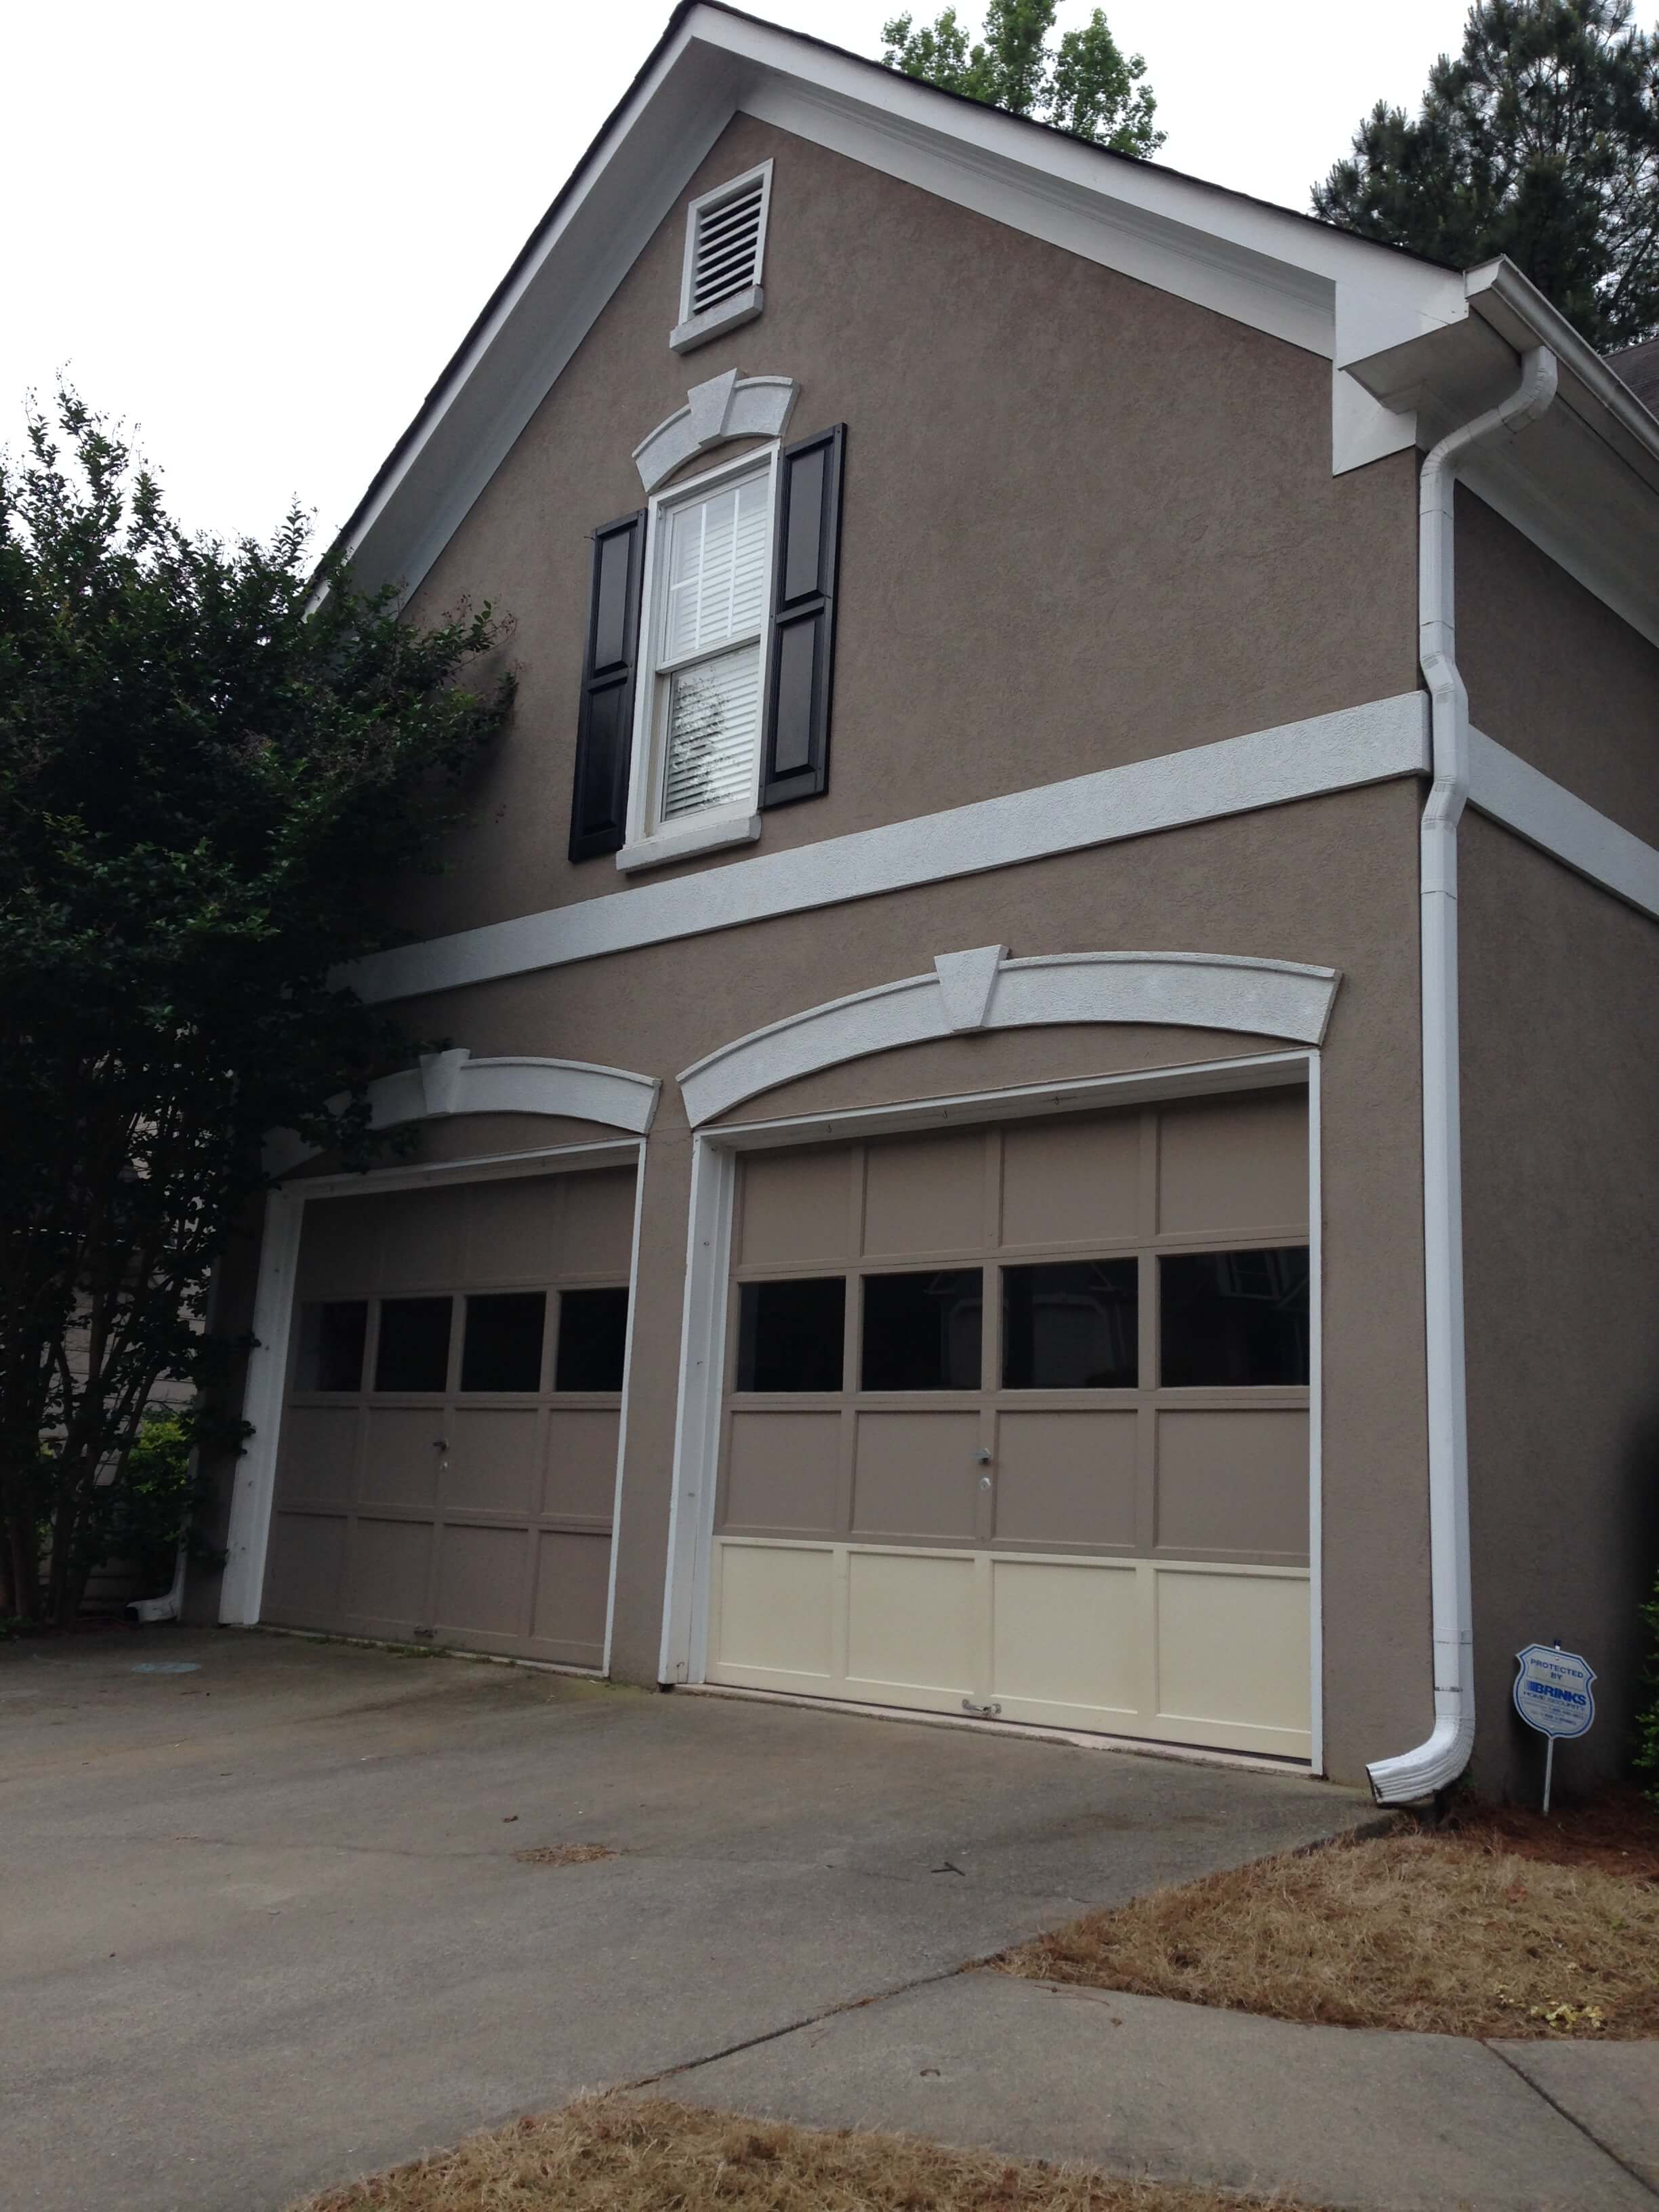 Choosing garage door color wageuzi - Selecting exterior paint colors concept ...